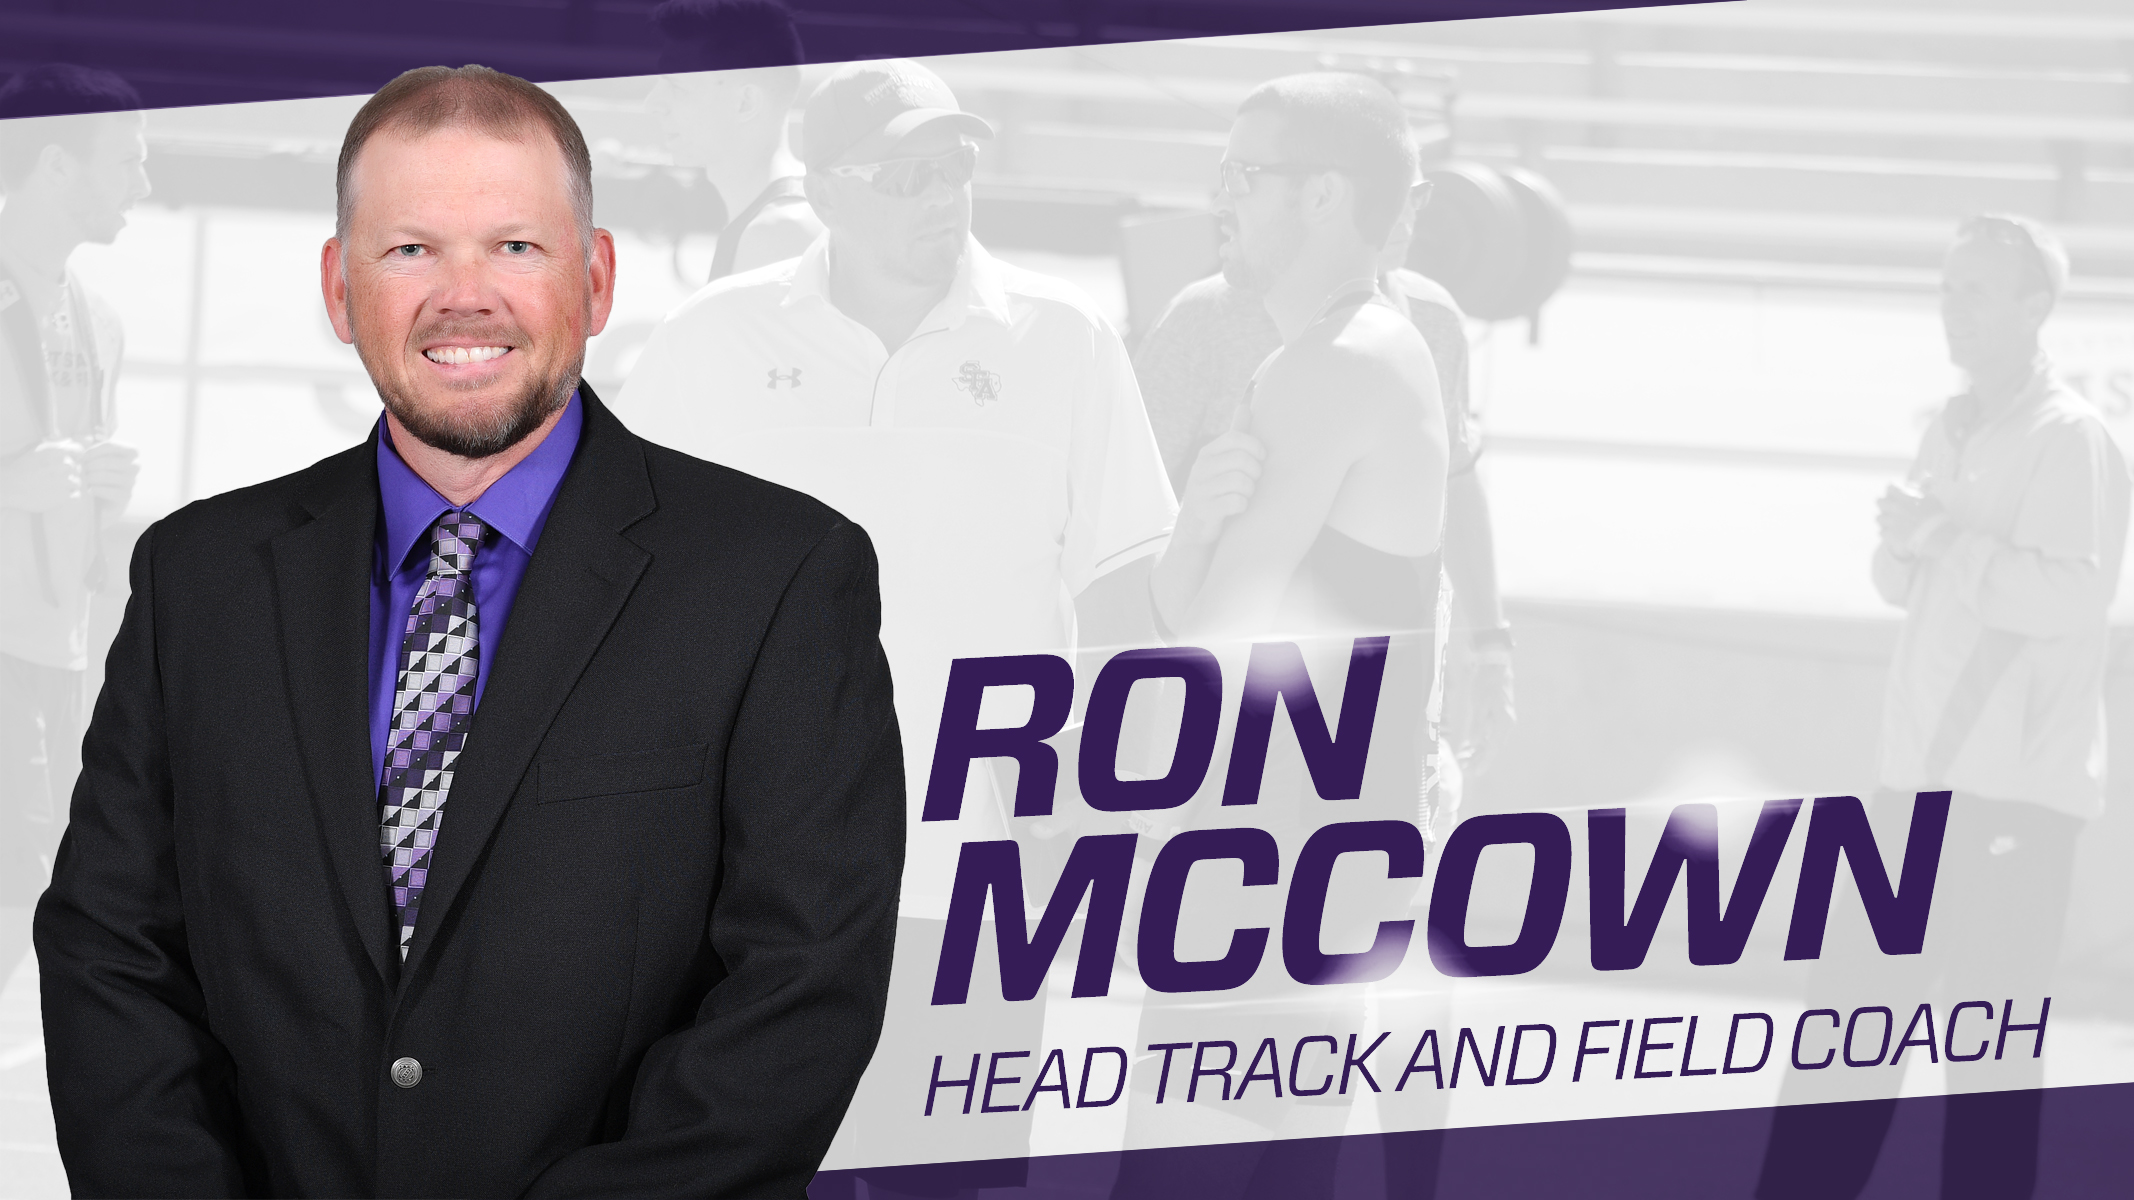 Track & Field: Ron McCown Named Head Coach for Track & Field